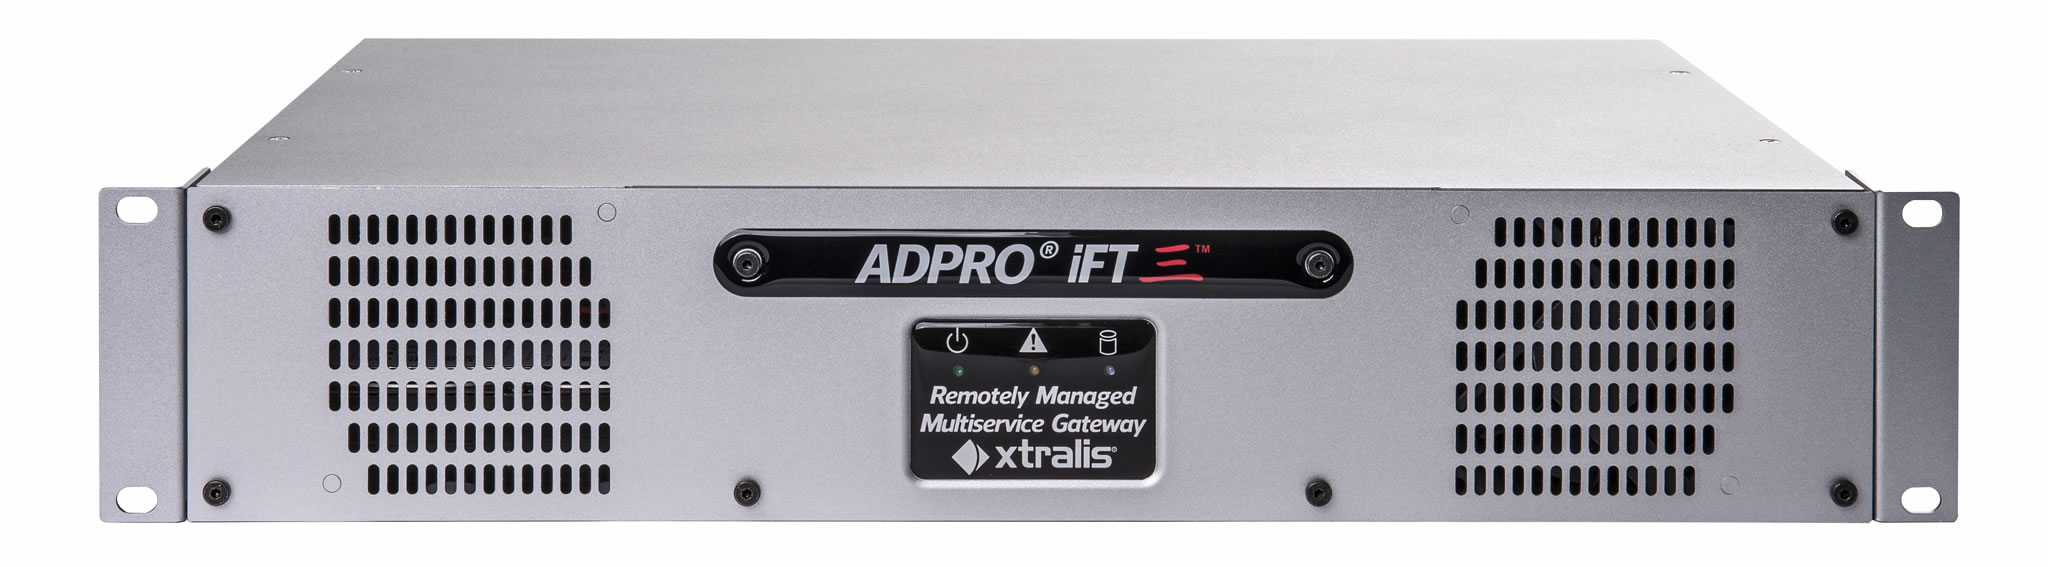 Xtralis Adpro Fixed Price Repair at Multicare